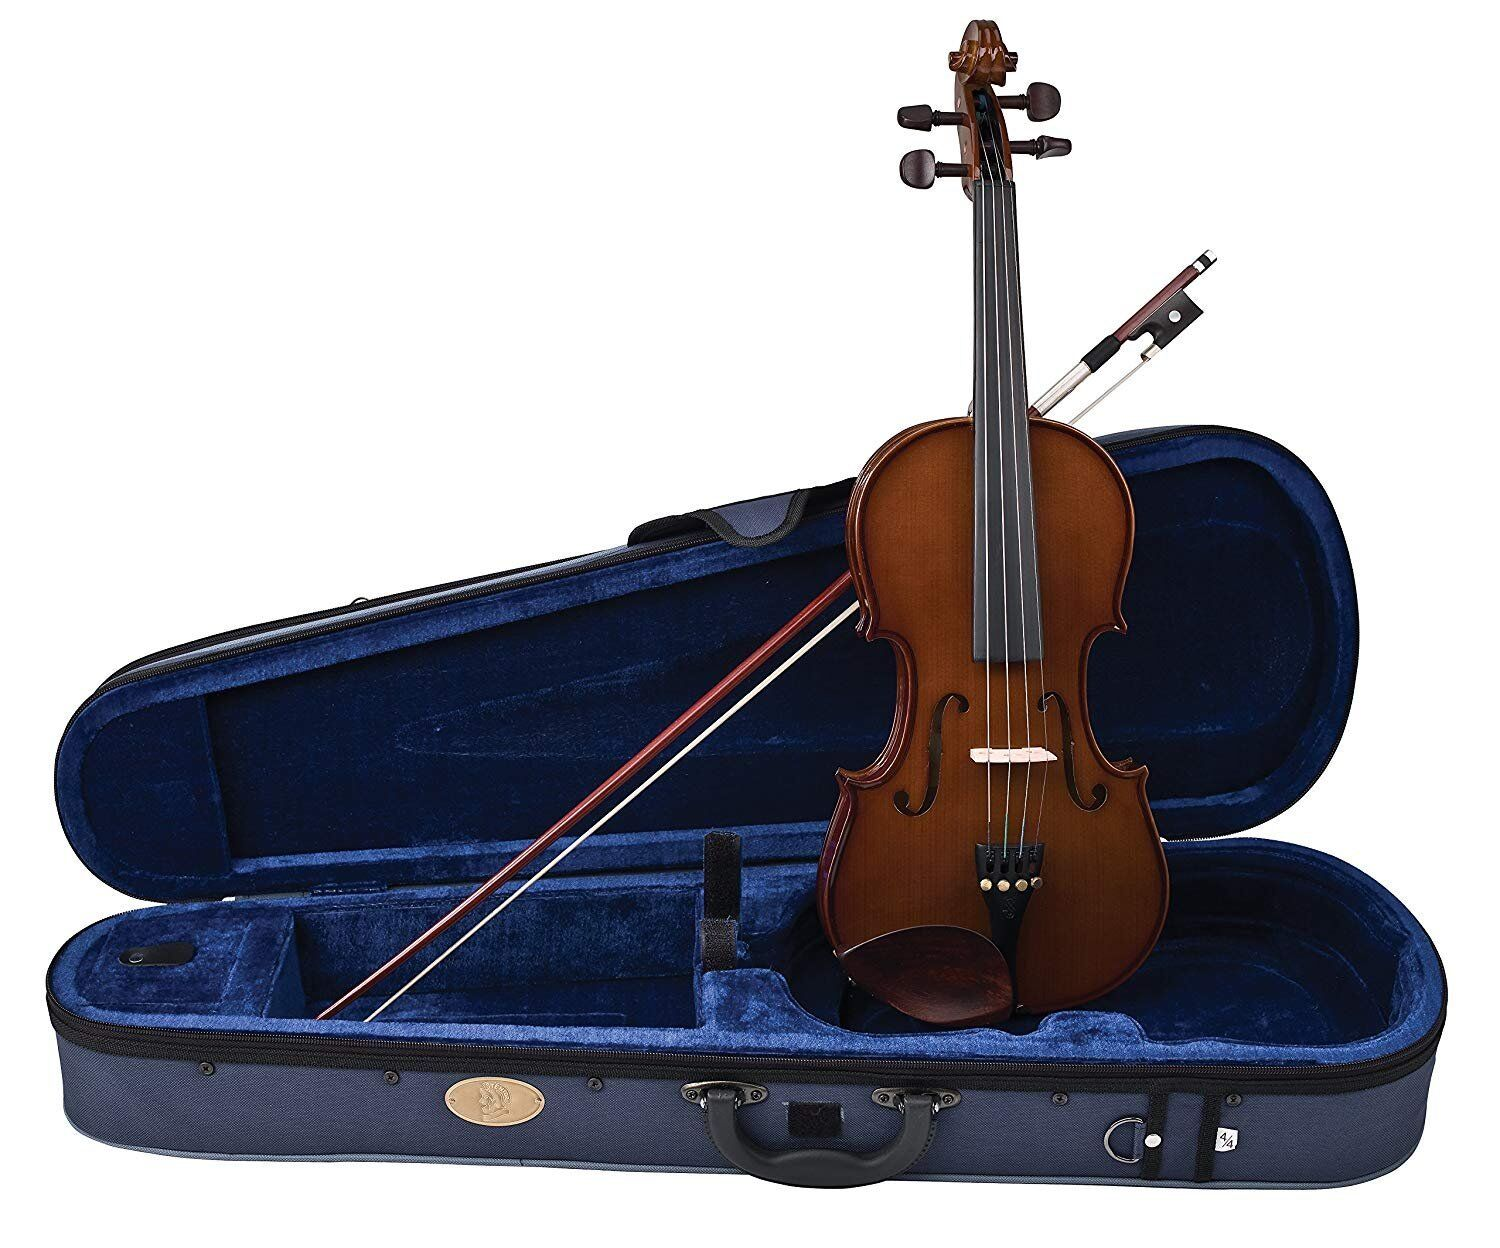 Stentor 1400G2-1 8 Student I Violin Outfit - 1 8